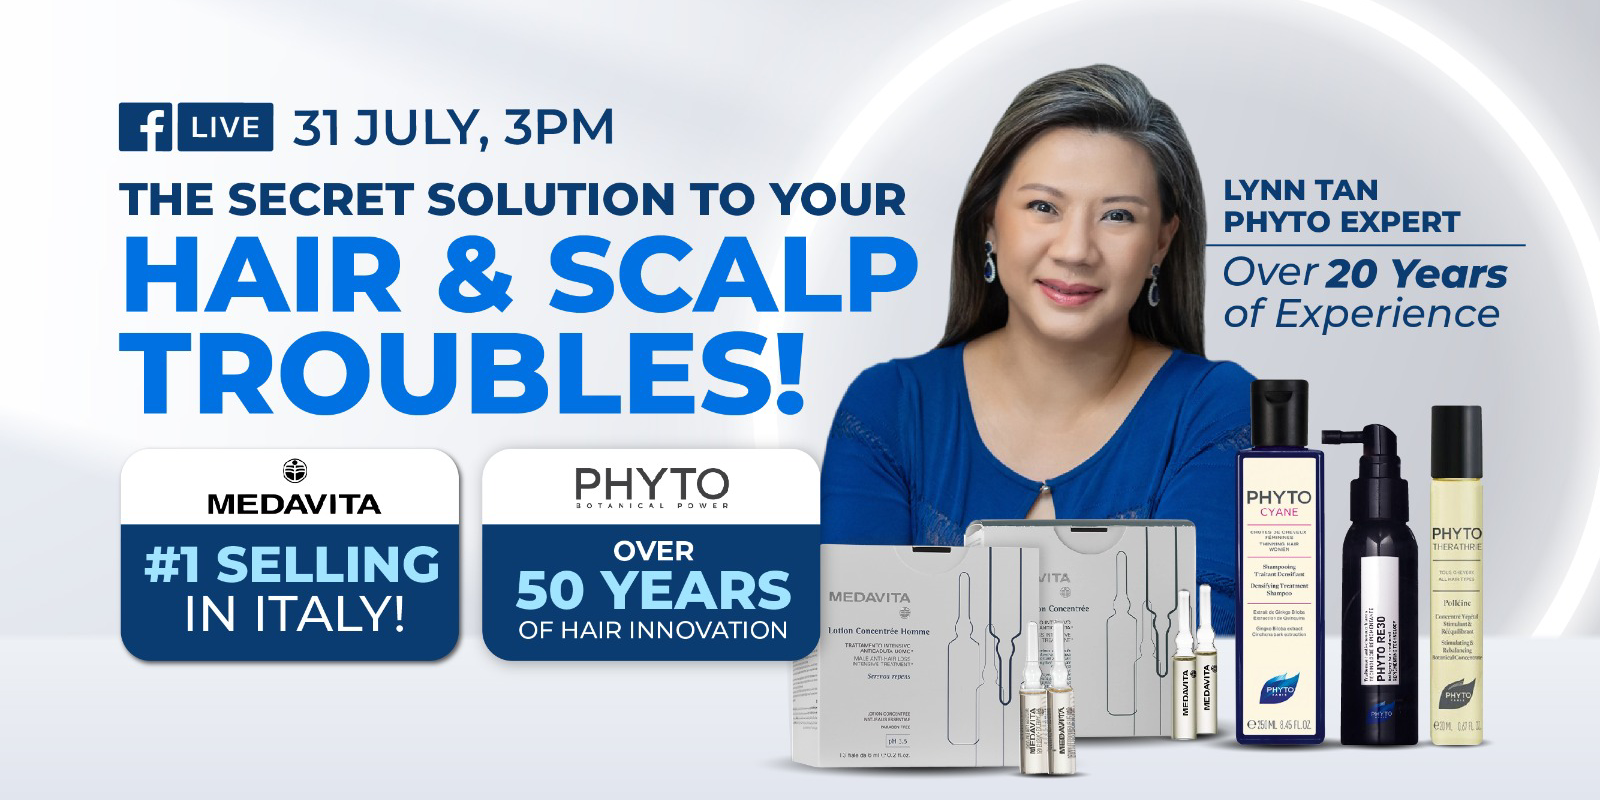 Discover the Secret Solution to your Hair & Scalp Troubles!